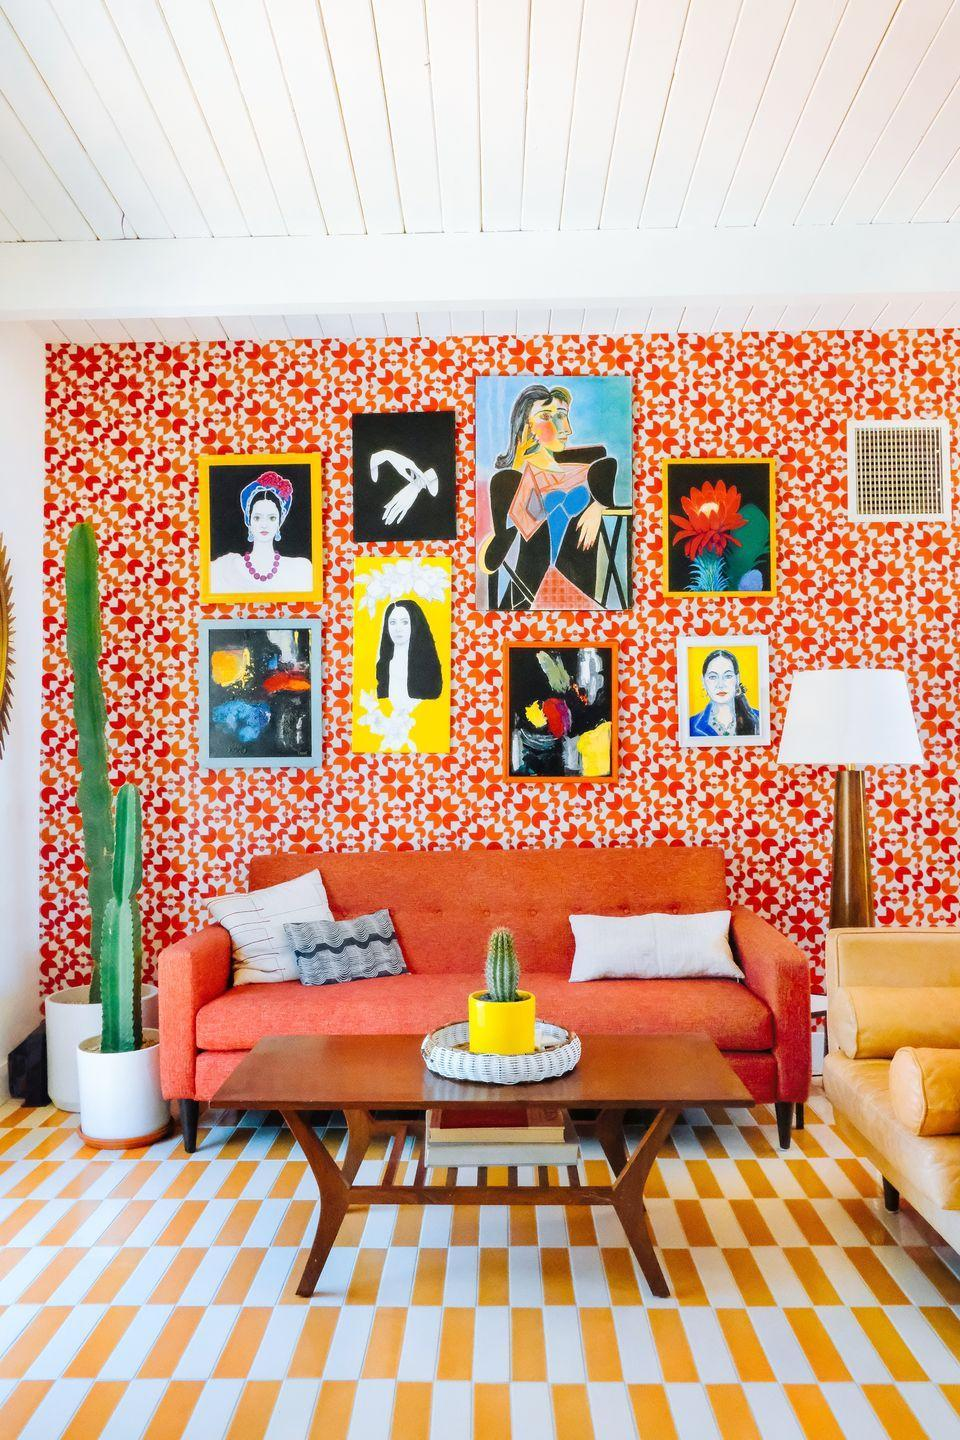 """<p><a href=""""https://www.dazeyden.com/"""" rel=""""nofollow noopener"""" target=""""_blank"""" data-ylk=""""slk:Dazey Den"""" class=""""link rapid-noclick-resp"""">Dazey Den</a>'s Danielle Nagel embraces her eclectic side with a colorful mosaic wallpaper from Hygge & West. A vibrant gallery wall, a yellow patterned rug, and a lamp from <a href=""""https://www.hvlgroup.com/Product/L1443-AGB"""" rel=""""nofollow noopener"""" target=""""_blank"""" data-ylk=""""slk:Hudson Valley Lighting"""" class=""""link rapid-noclick-resp"""">Hudson Valley Lighting</a> round out the look, creating a space that's unapologetically bold.</p><p><em>Arcade Wallpaper, $195</em><br><a class=""""link rapid-noclick-resp"""" href=""""https://www.hyggeandwest.com/products/arcade-cayenne"""" rel=""""nofollow noopener"""" target=""""_blank"""" data-ylk=""""slk:Shop the Look"""">Shop the Look</a></p>"""